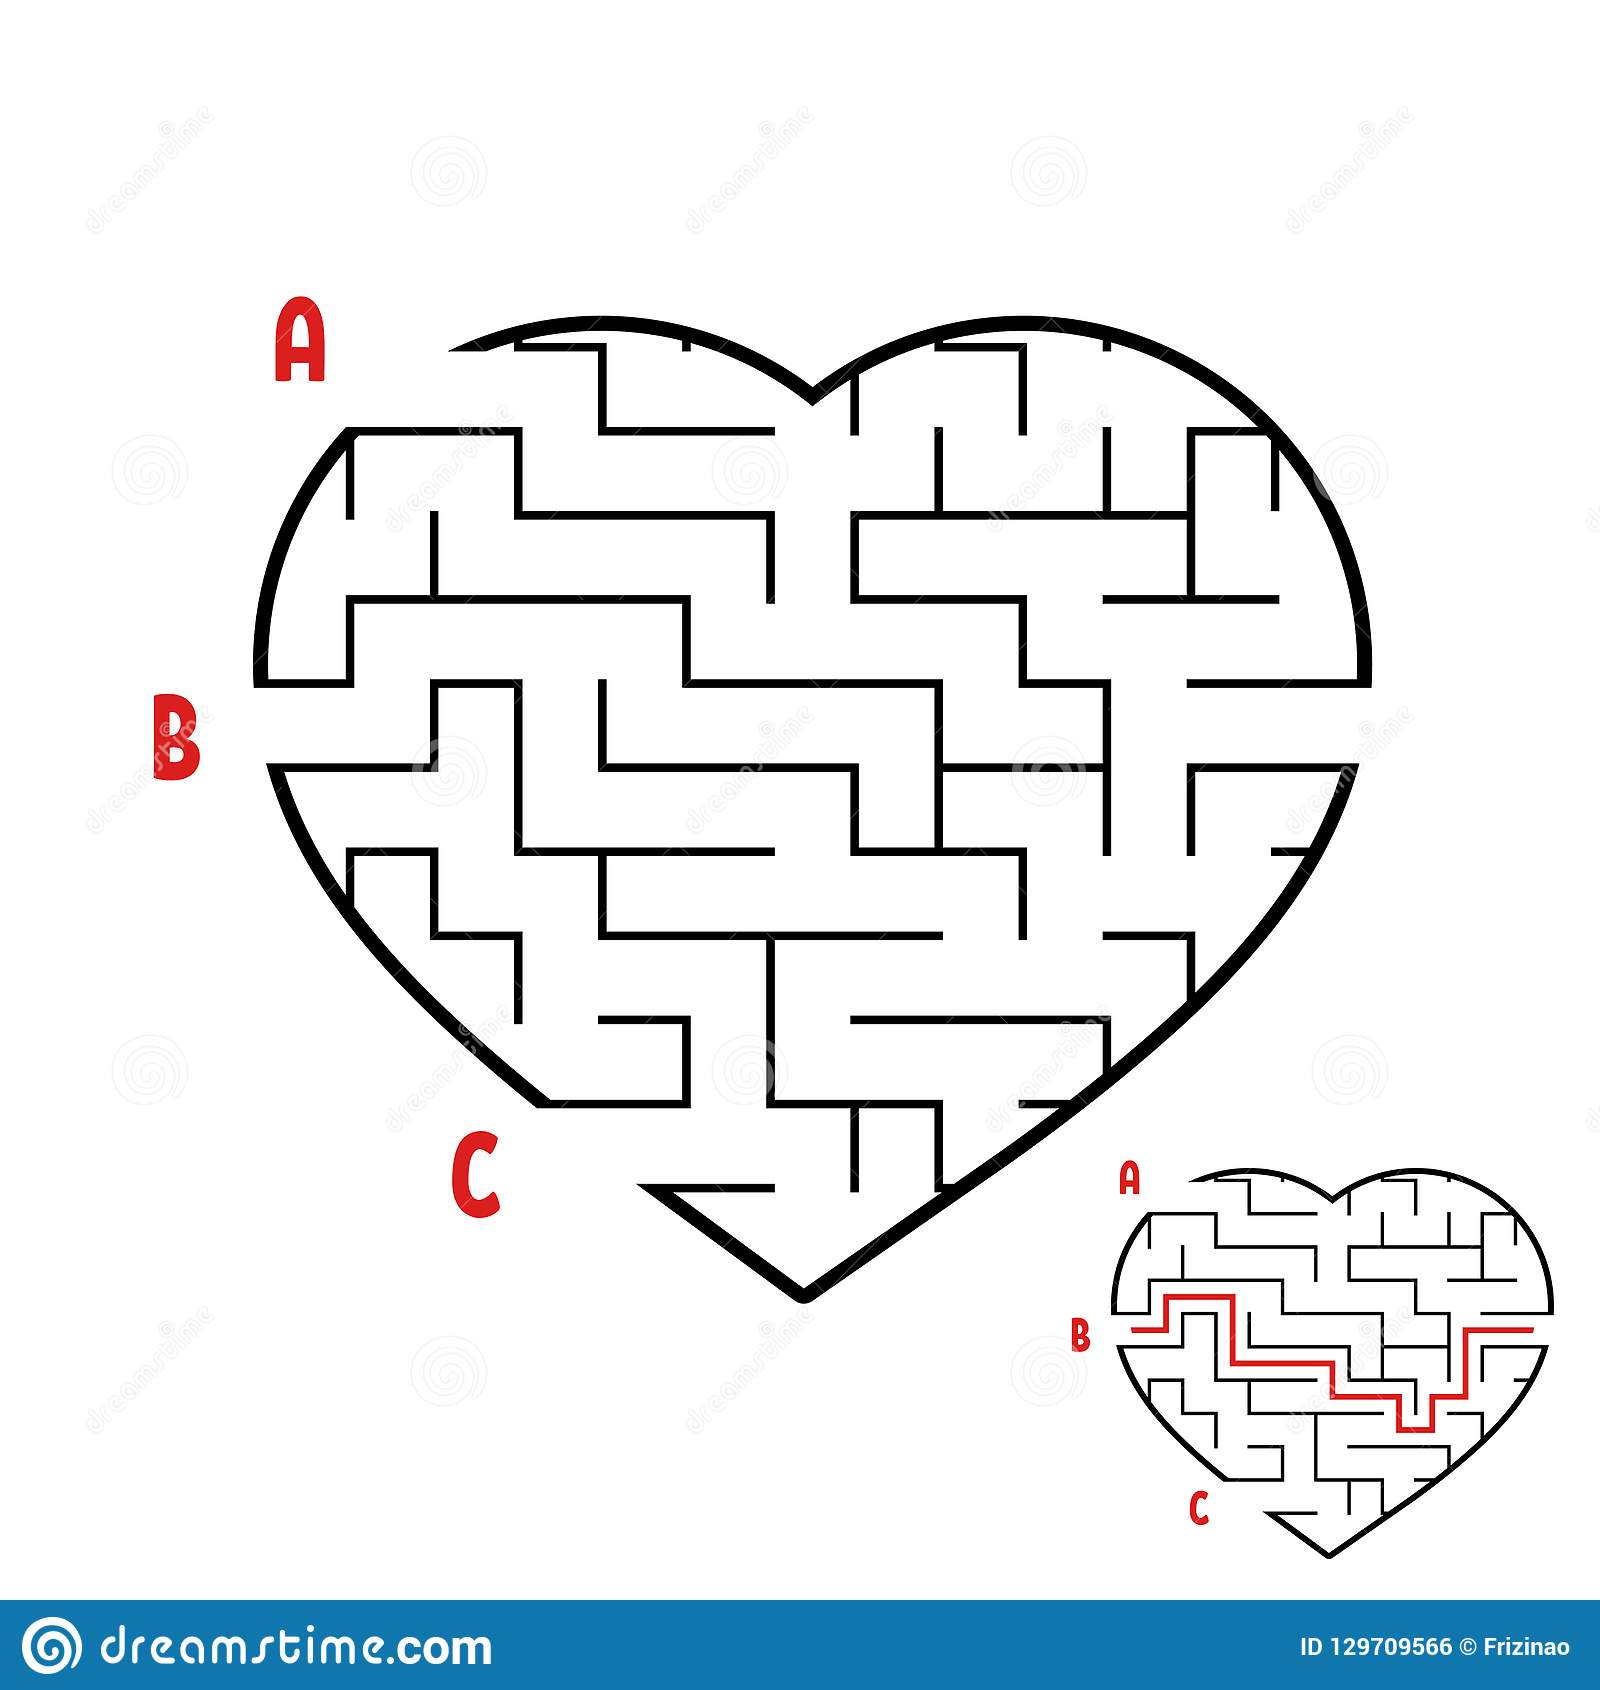 Labyrinth In The Shape Of A Heart Game For Kids Puzzle